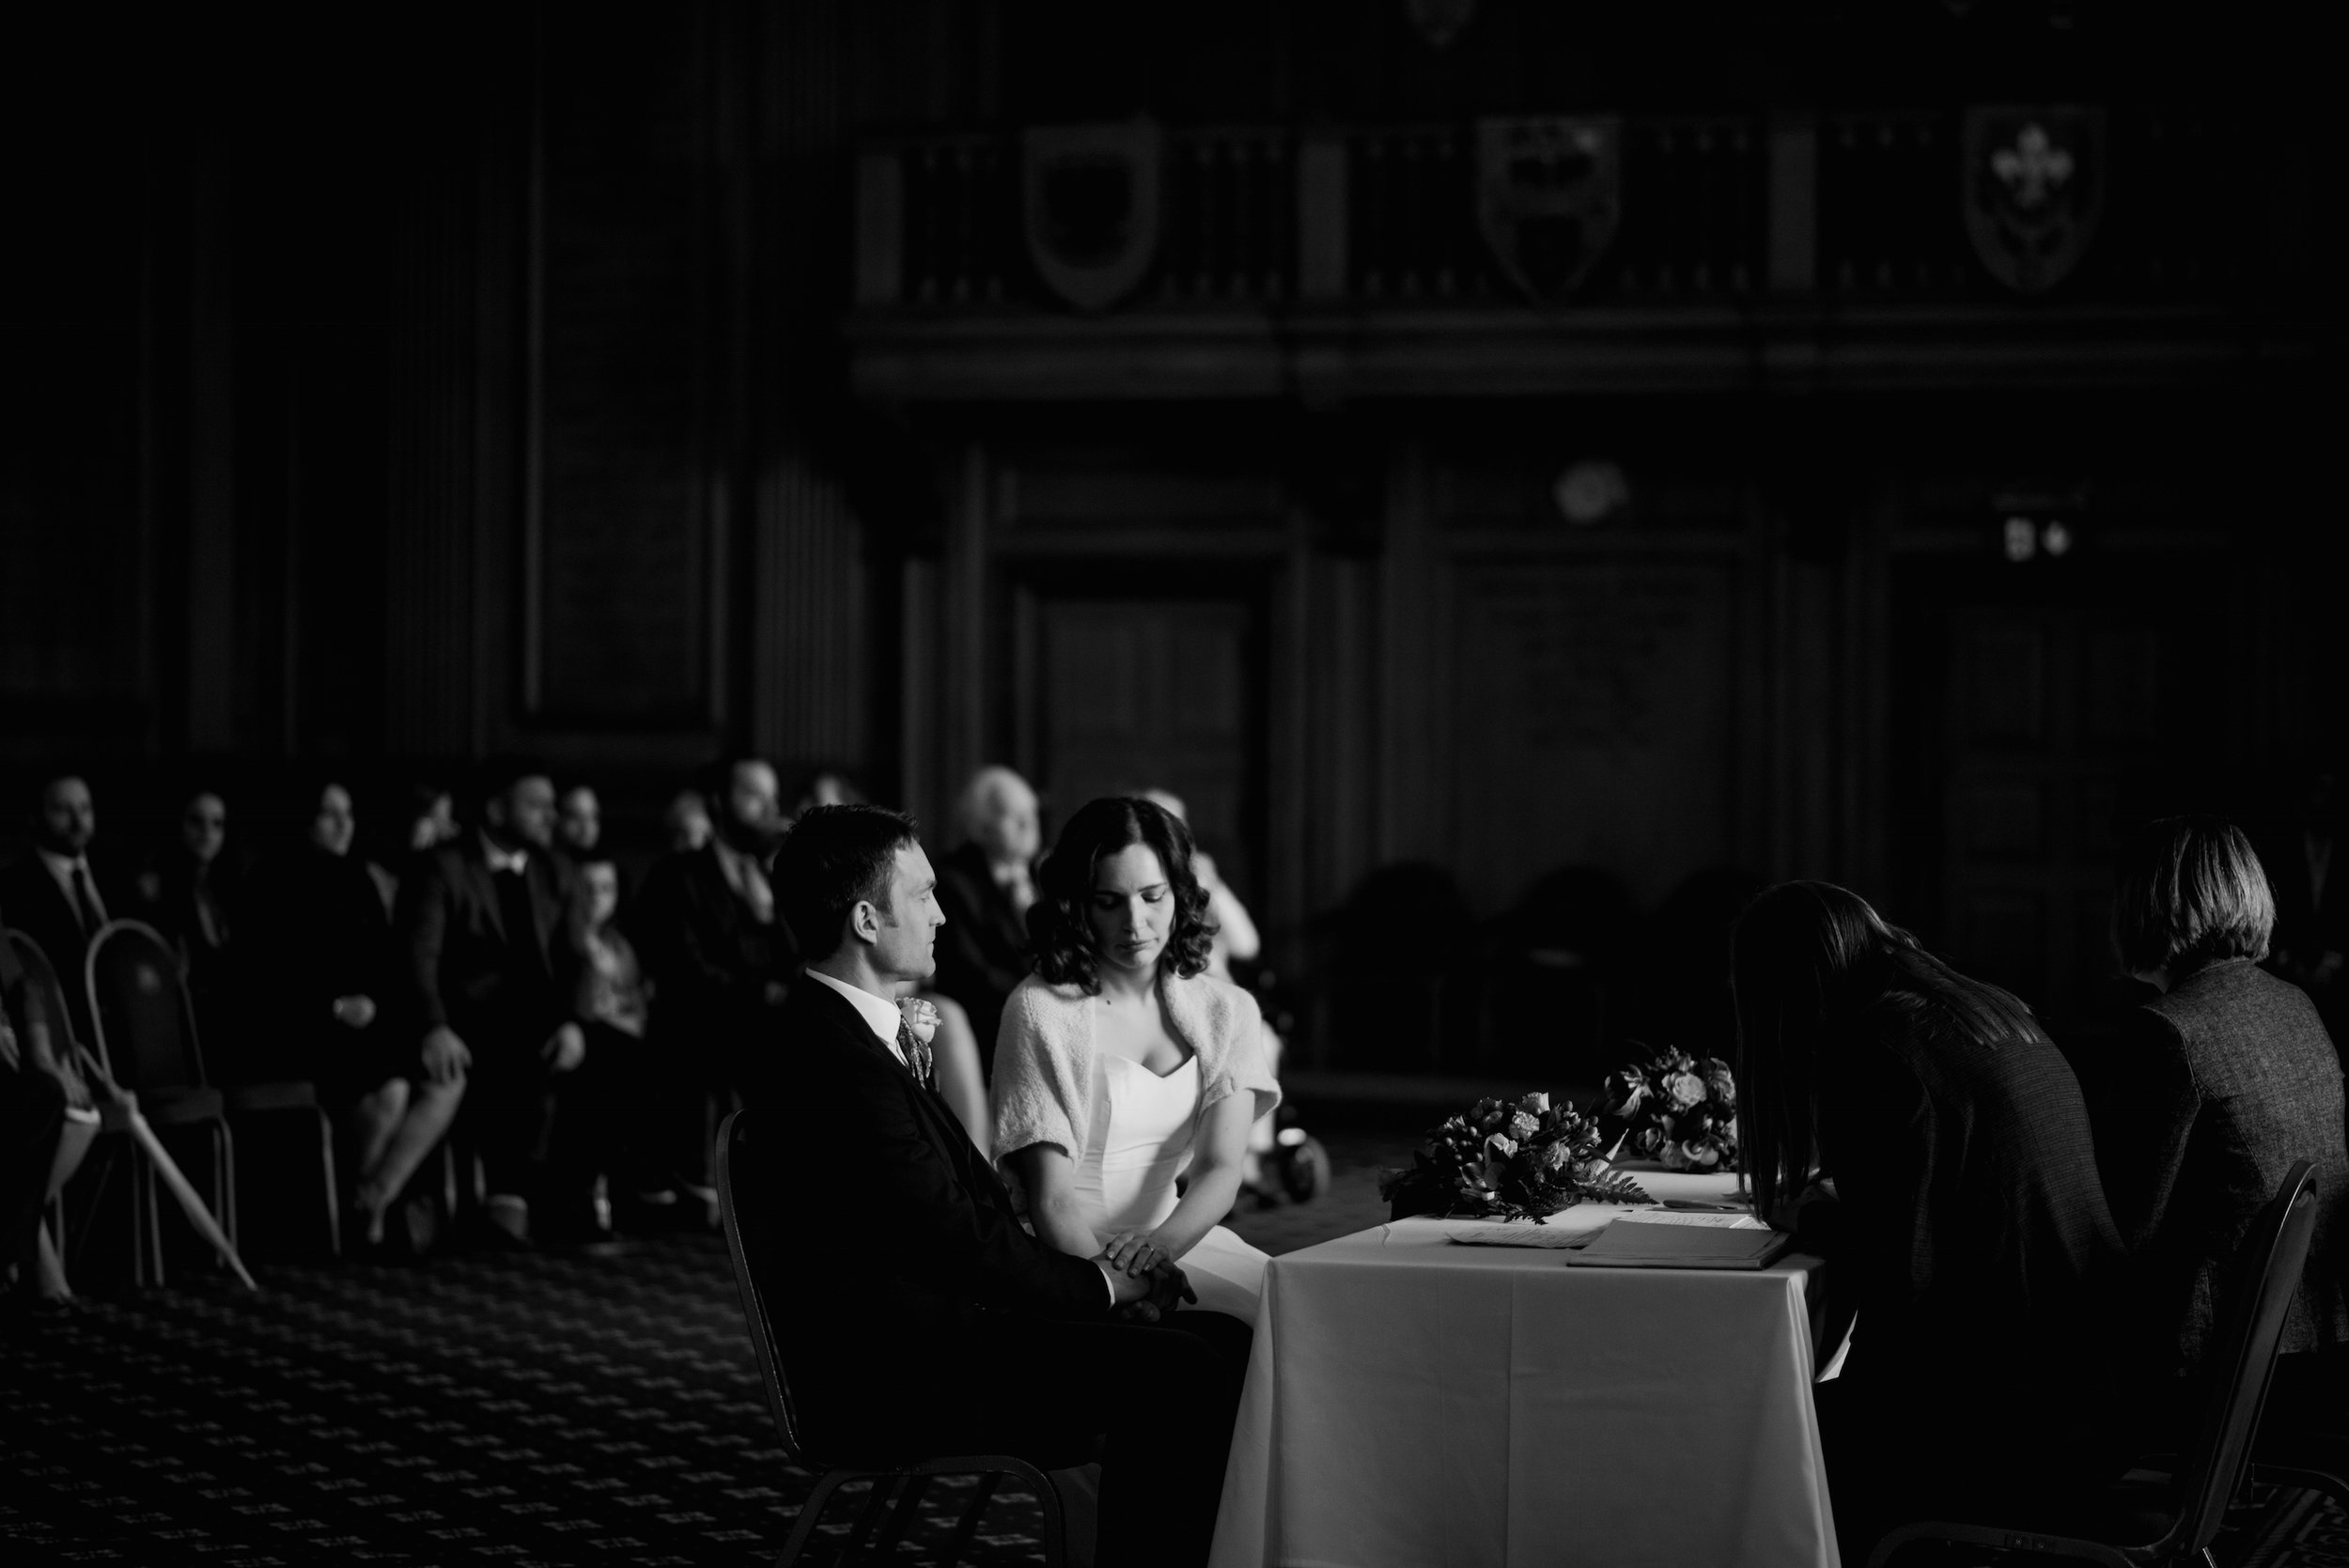 110 Leeds Civic Hall Wedding Yorkshire Wedding Photography Bride Groom.jpg